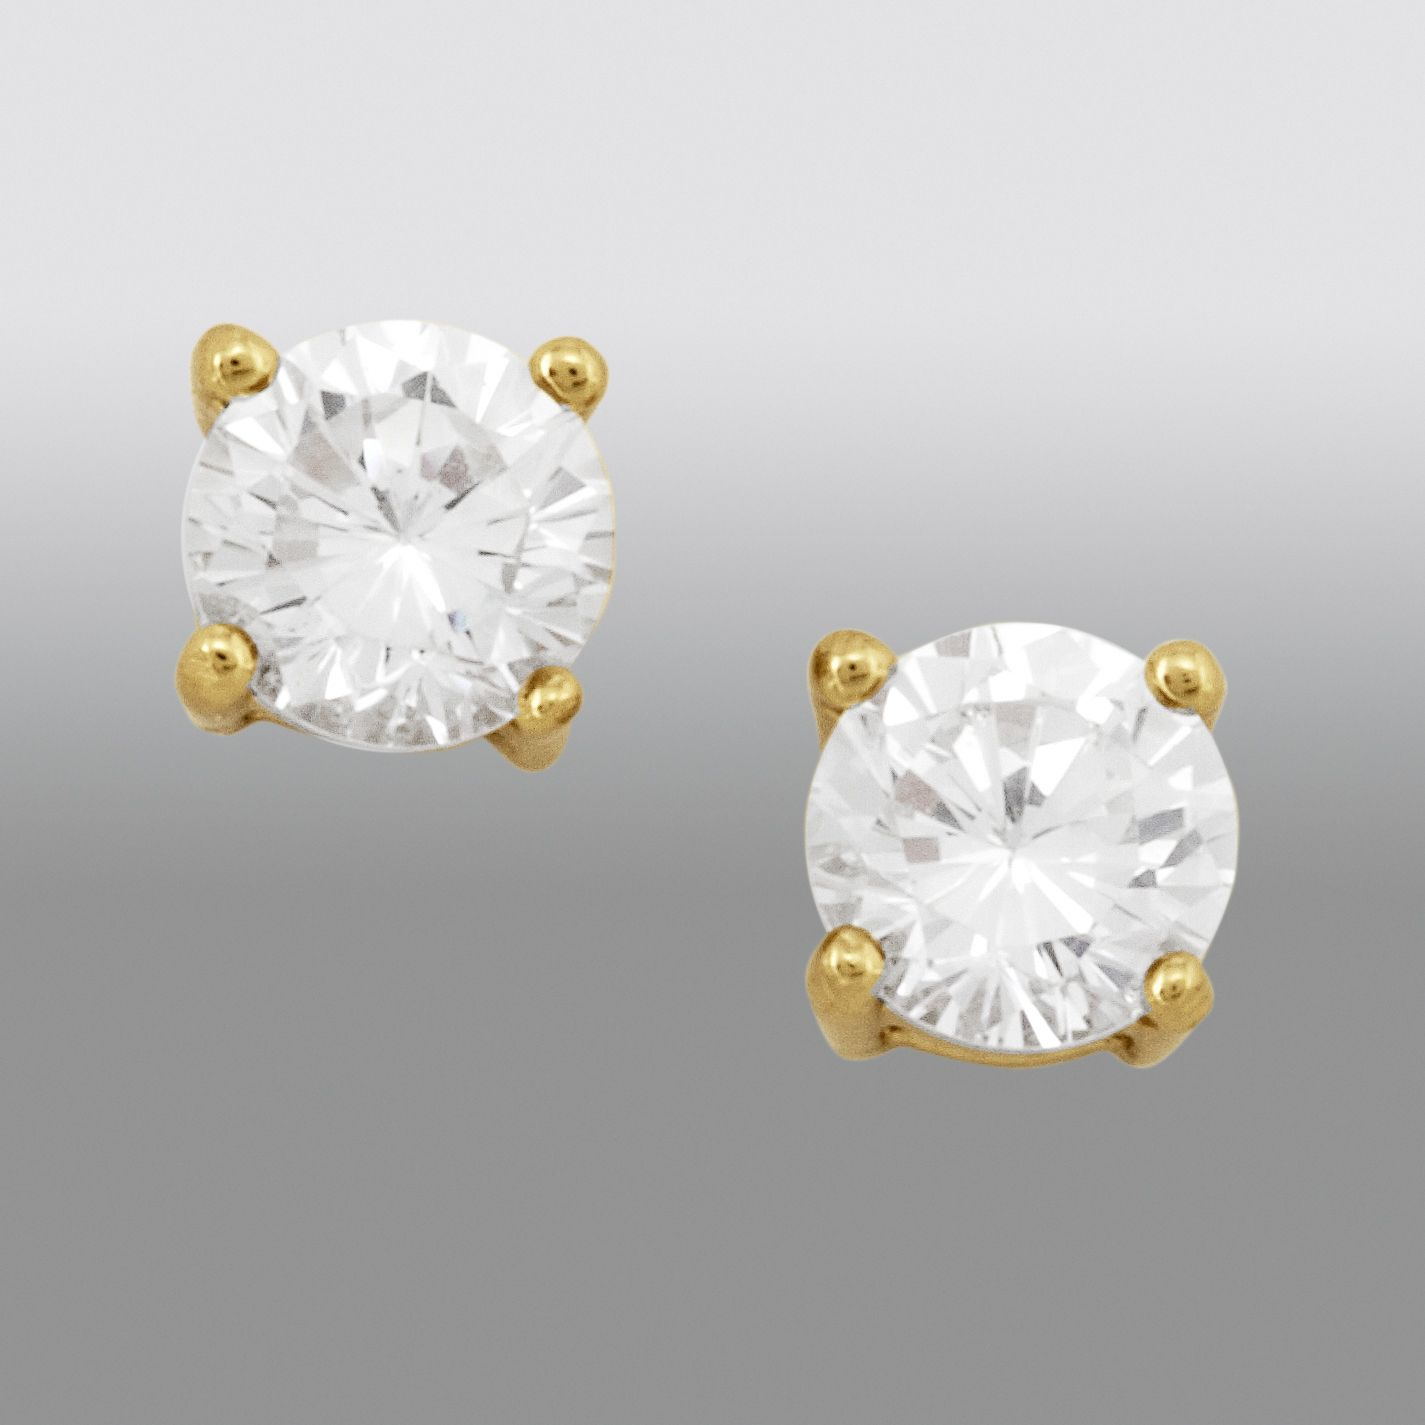 2 ct. Cubic Zirconia Stud Earrings in 24K